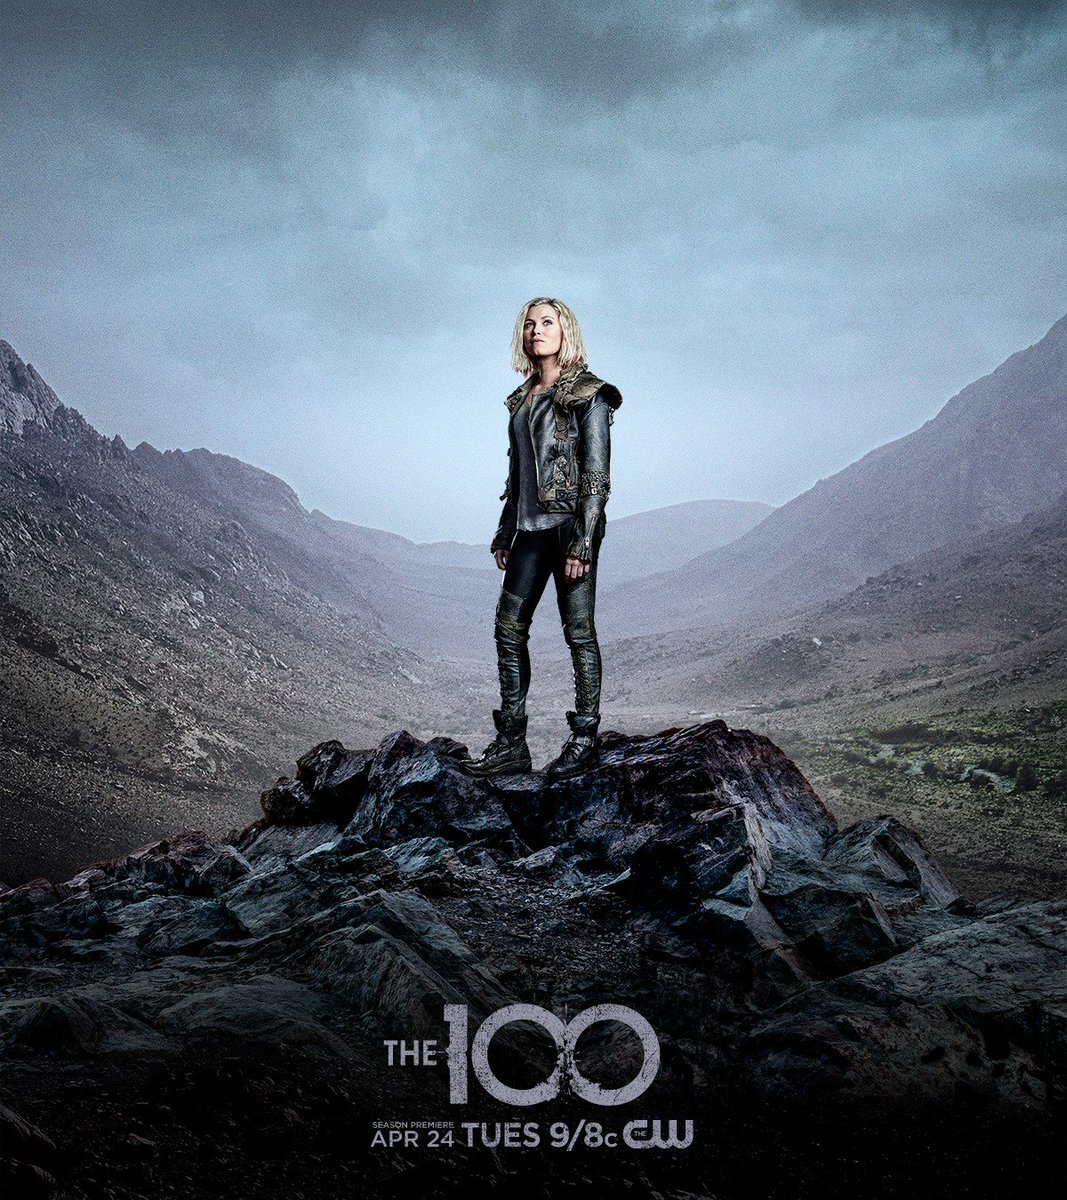 Last one standing. #The100 returns tomorrow at 9/8c on The CW! https://t.co/6LZAjvJaq3